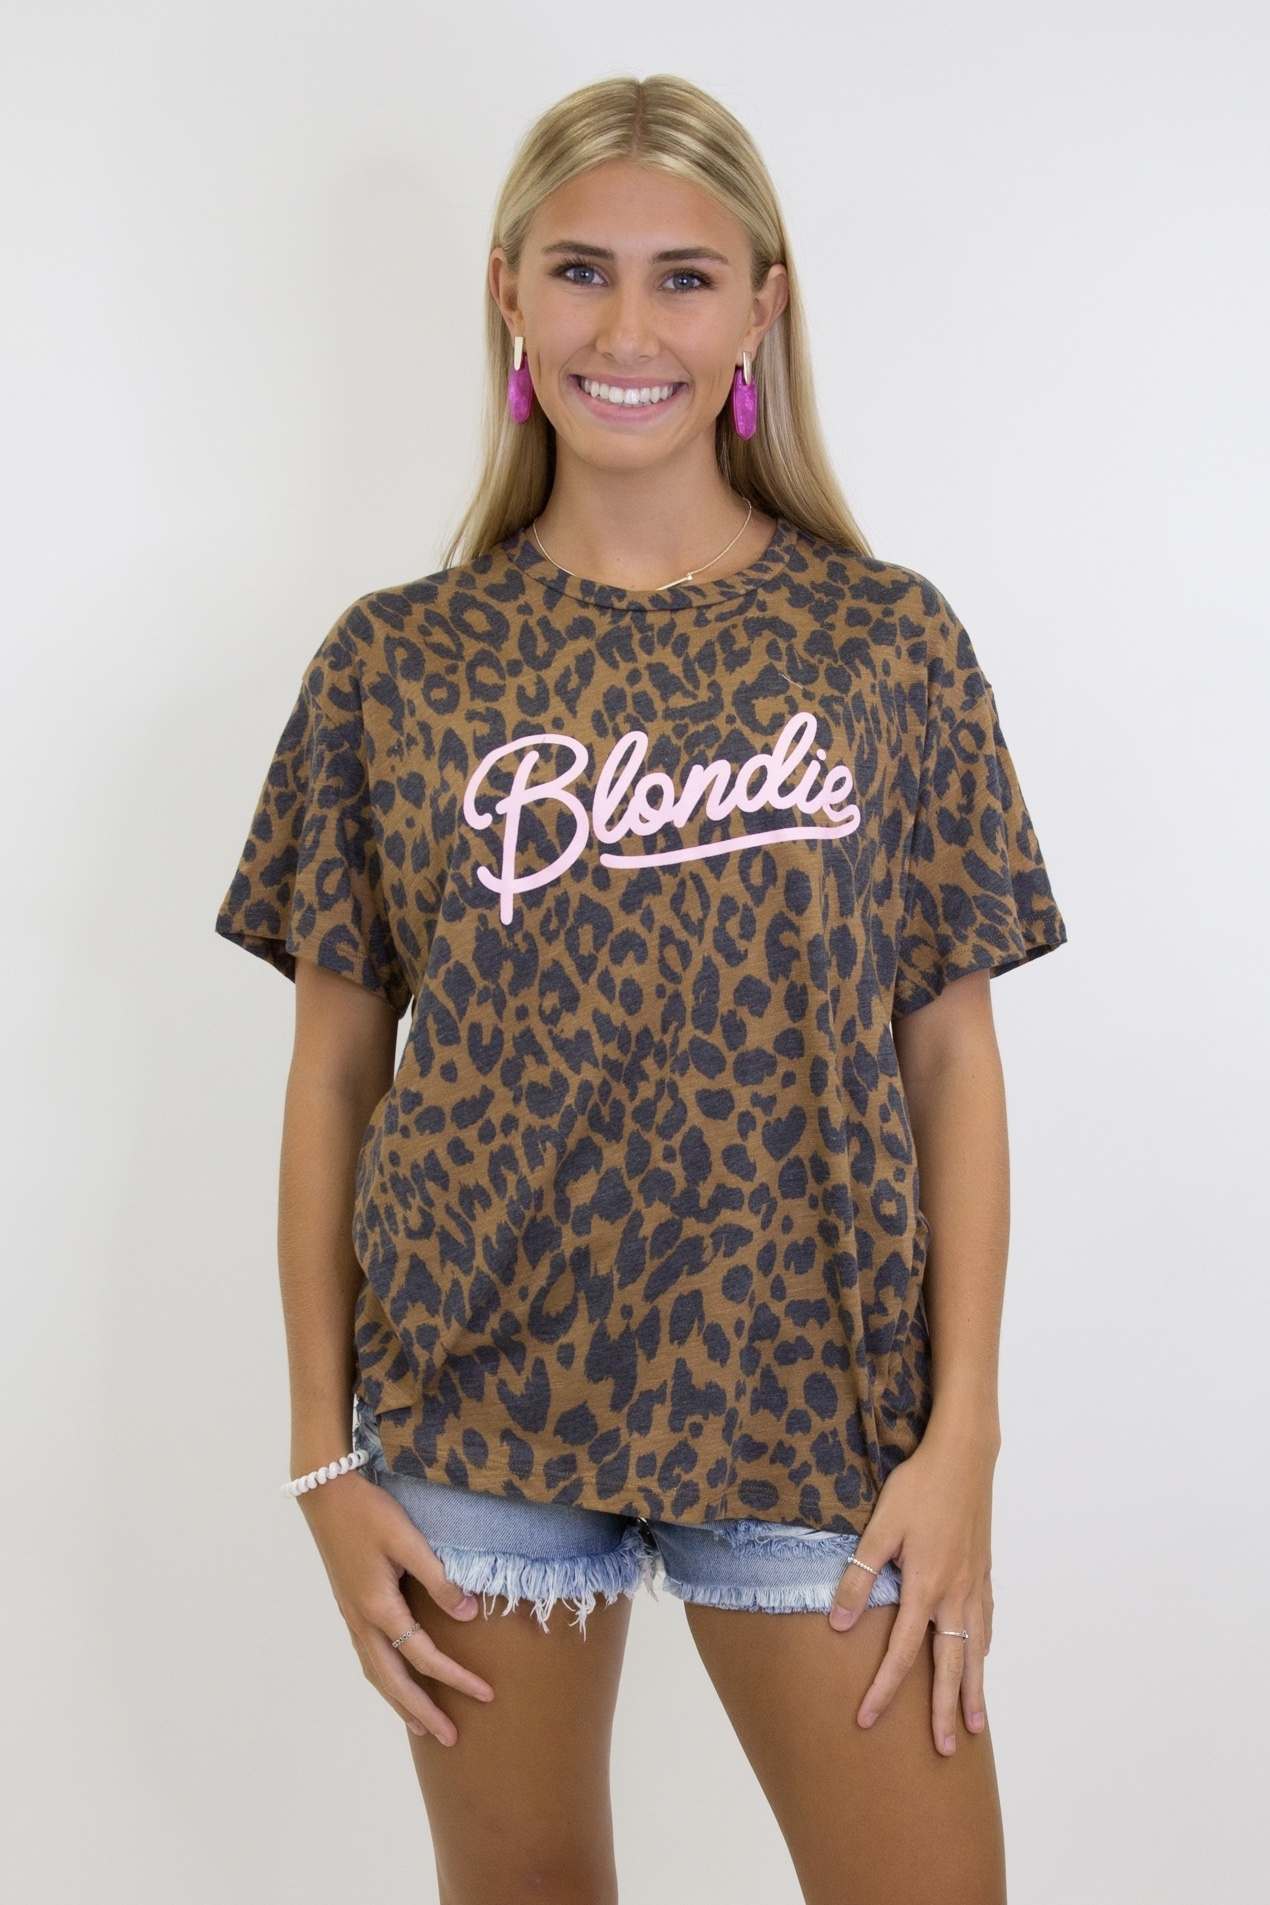 Blondie Graphic Leopard Tee in Brown